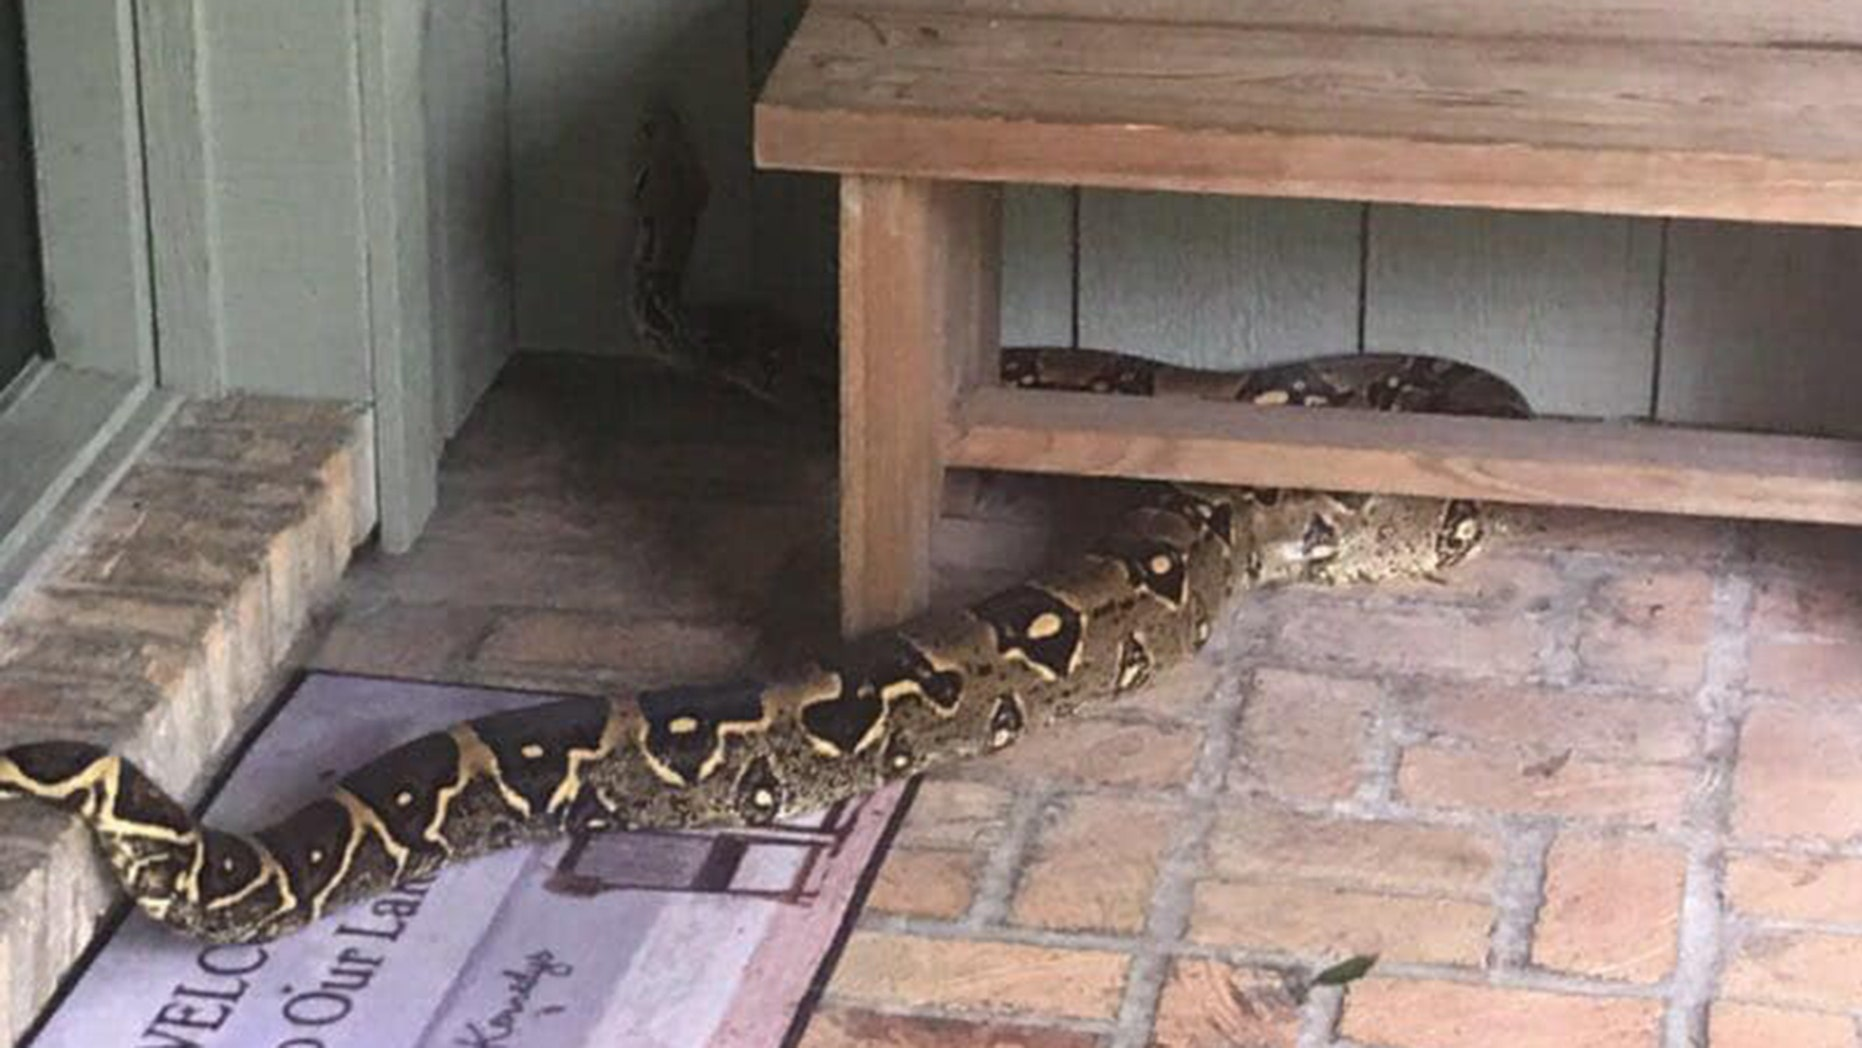 An 8-foot-long boa constrictor was handed over to the Florida Fish and Wildlife Conservation  Commission after it was spotted outside a Florida home Wednesday, officials said.